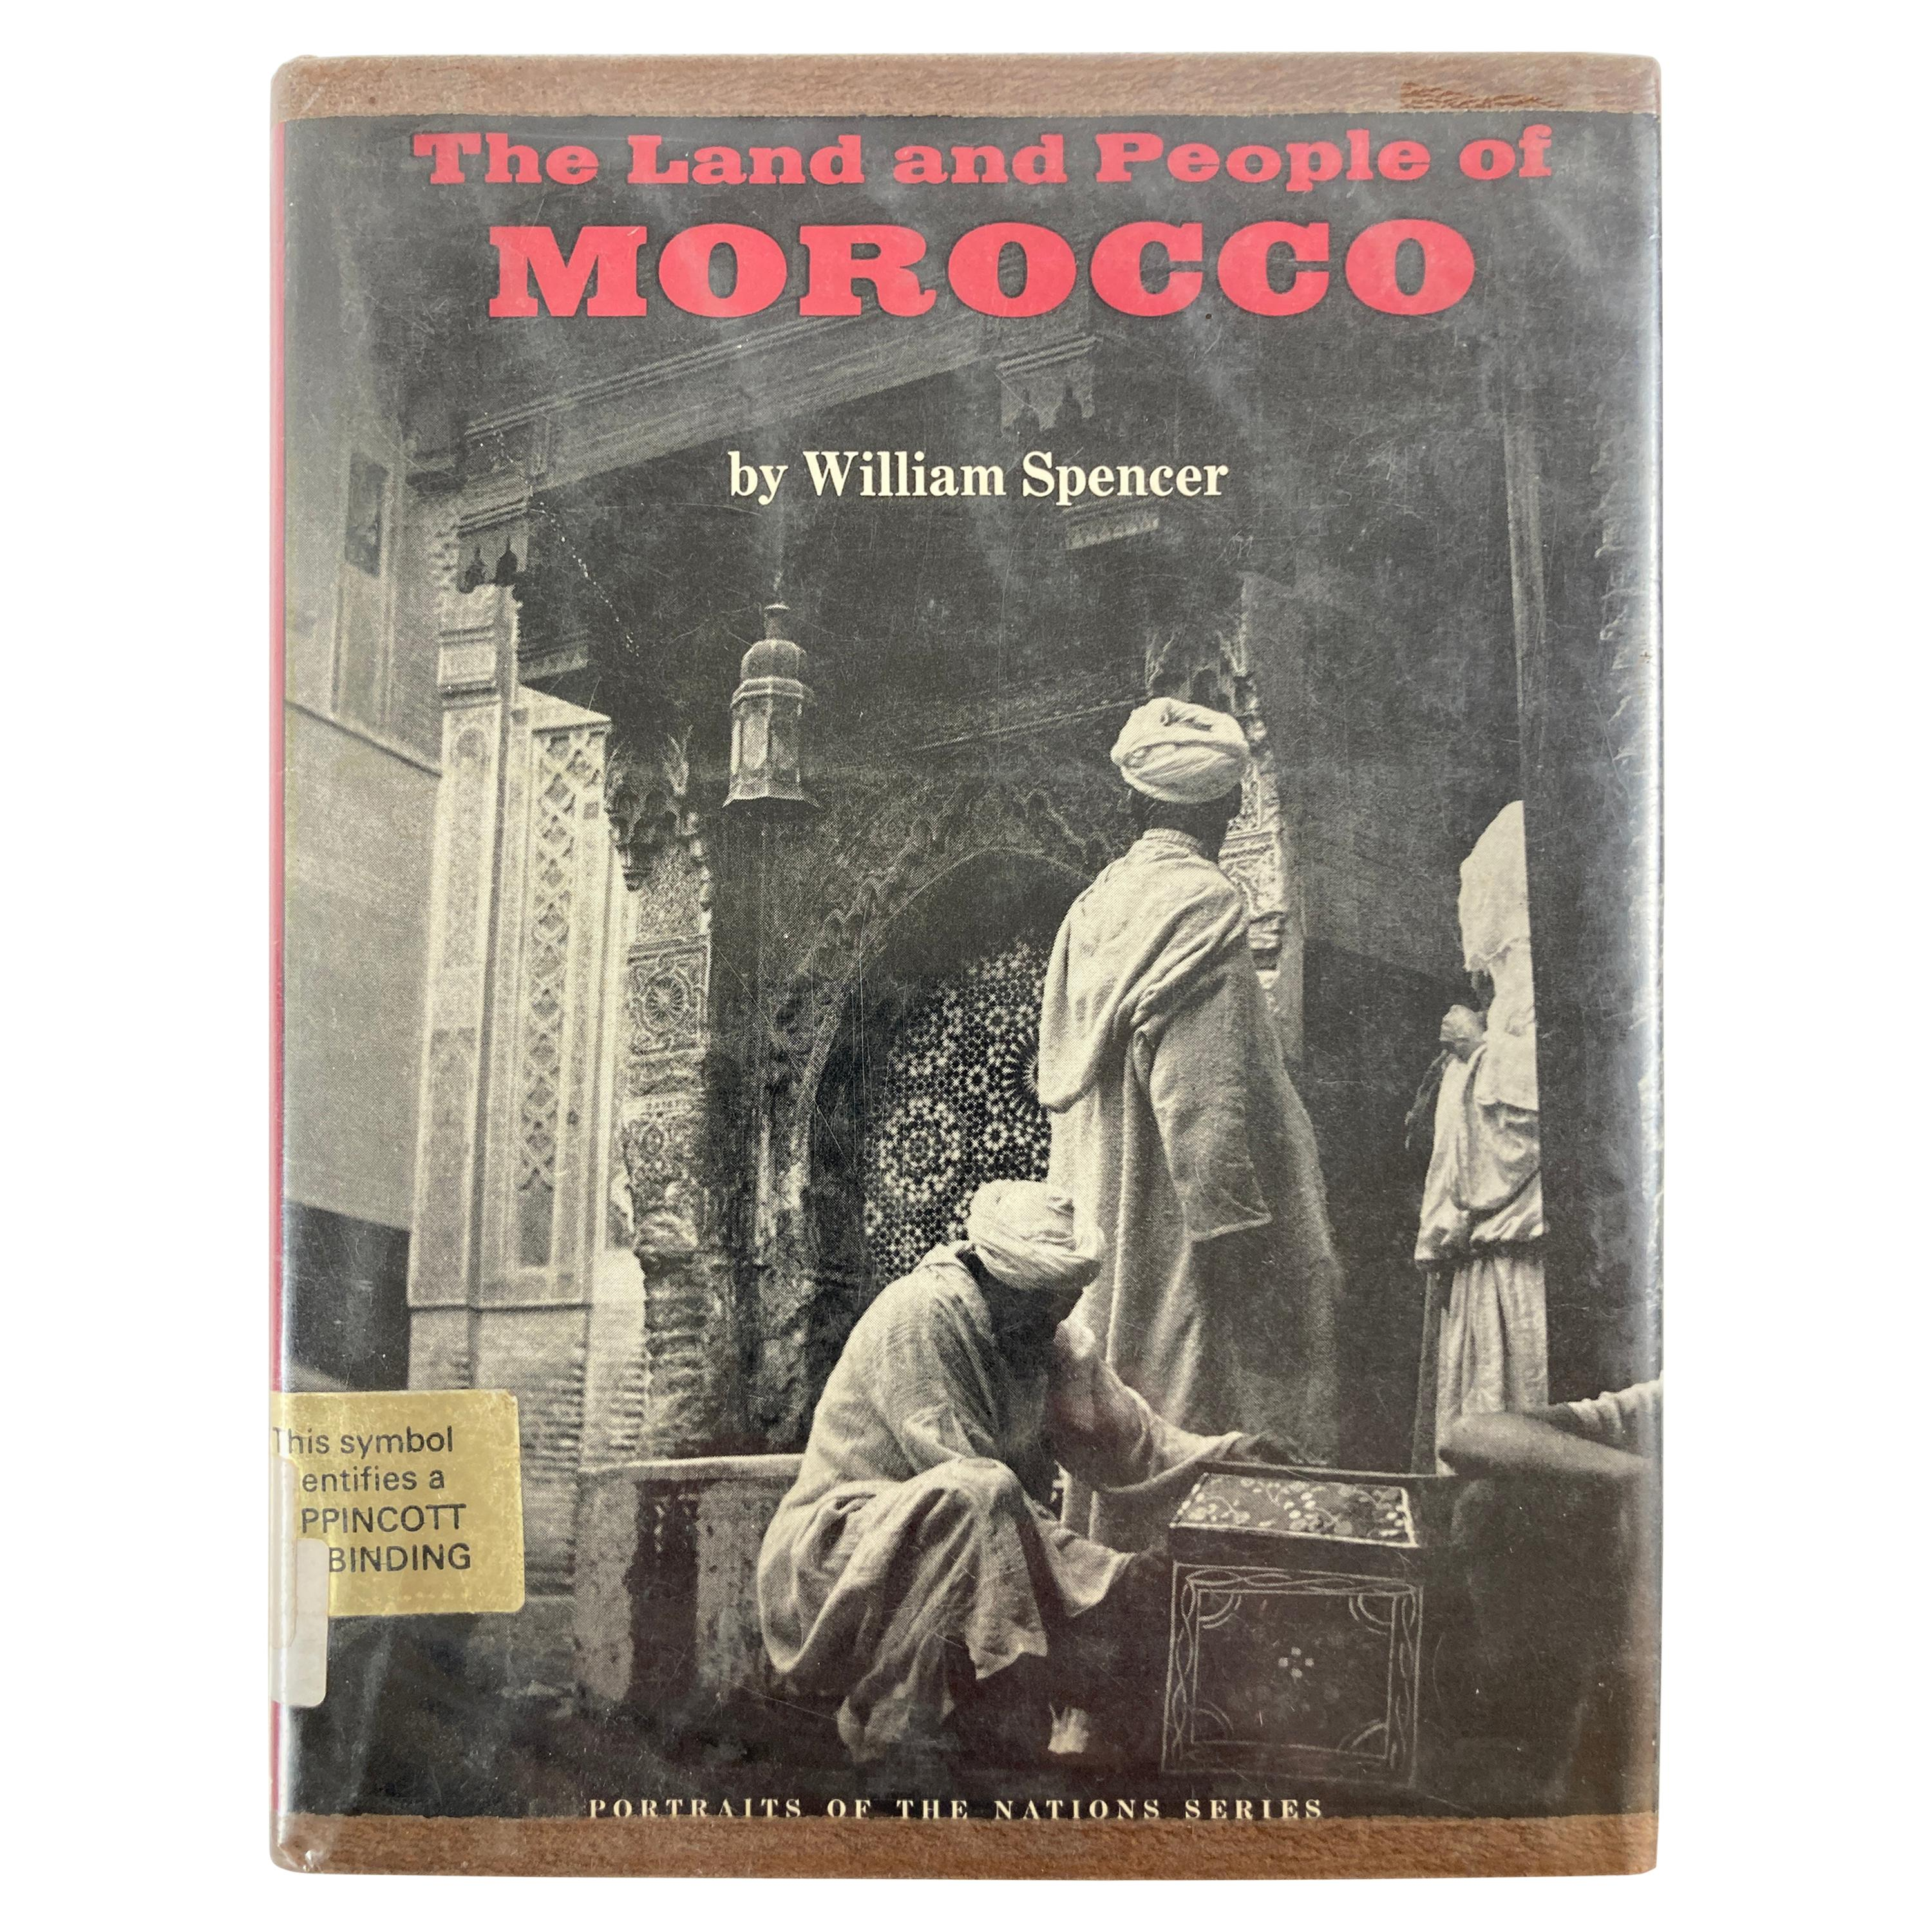 The Land and People of Morocco by William Spencer, 1973